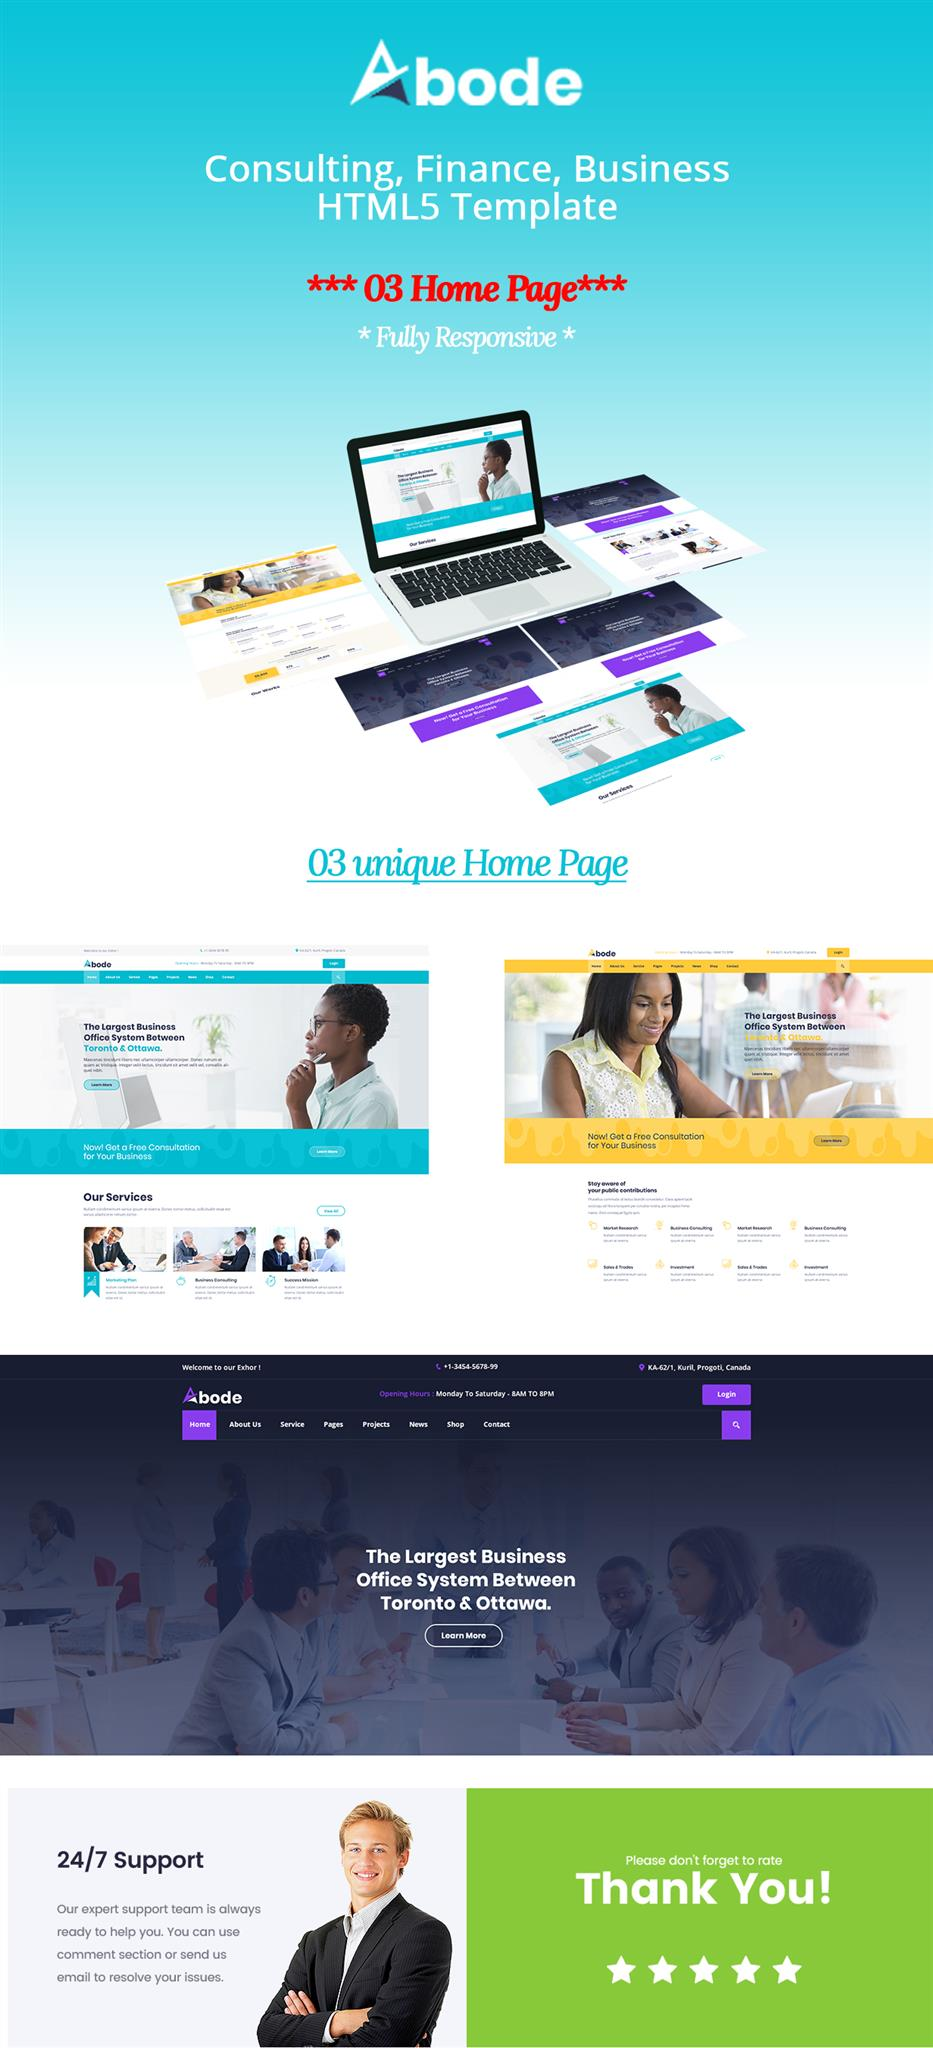 ABODE - Consulting, Finance, Business Bootstrap 4 Template